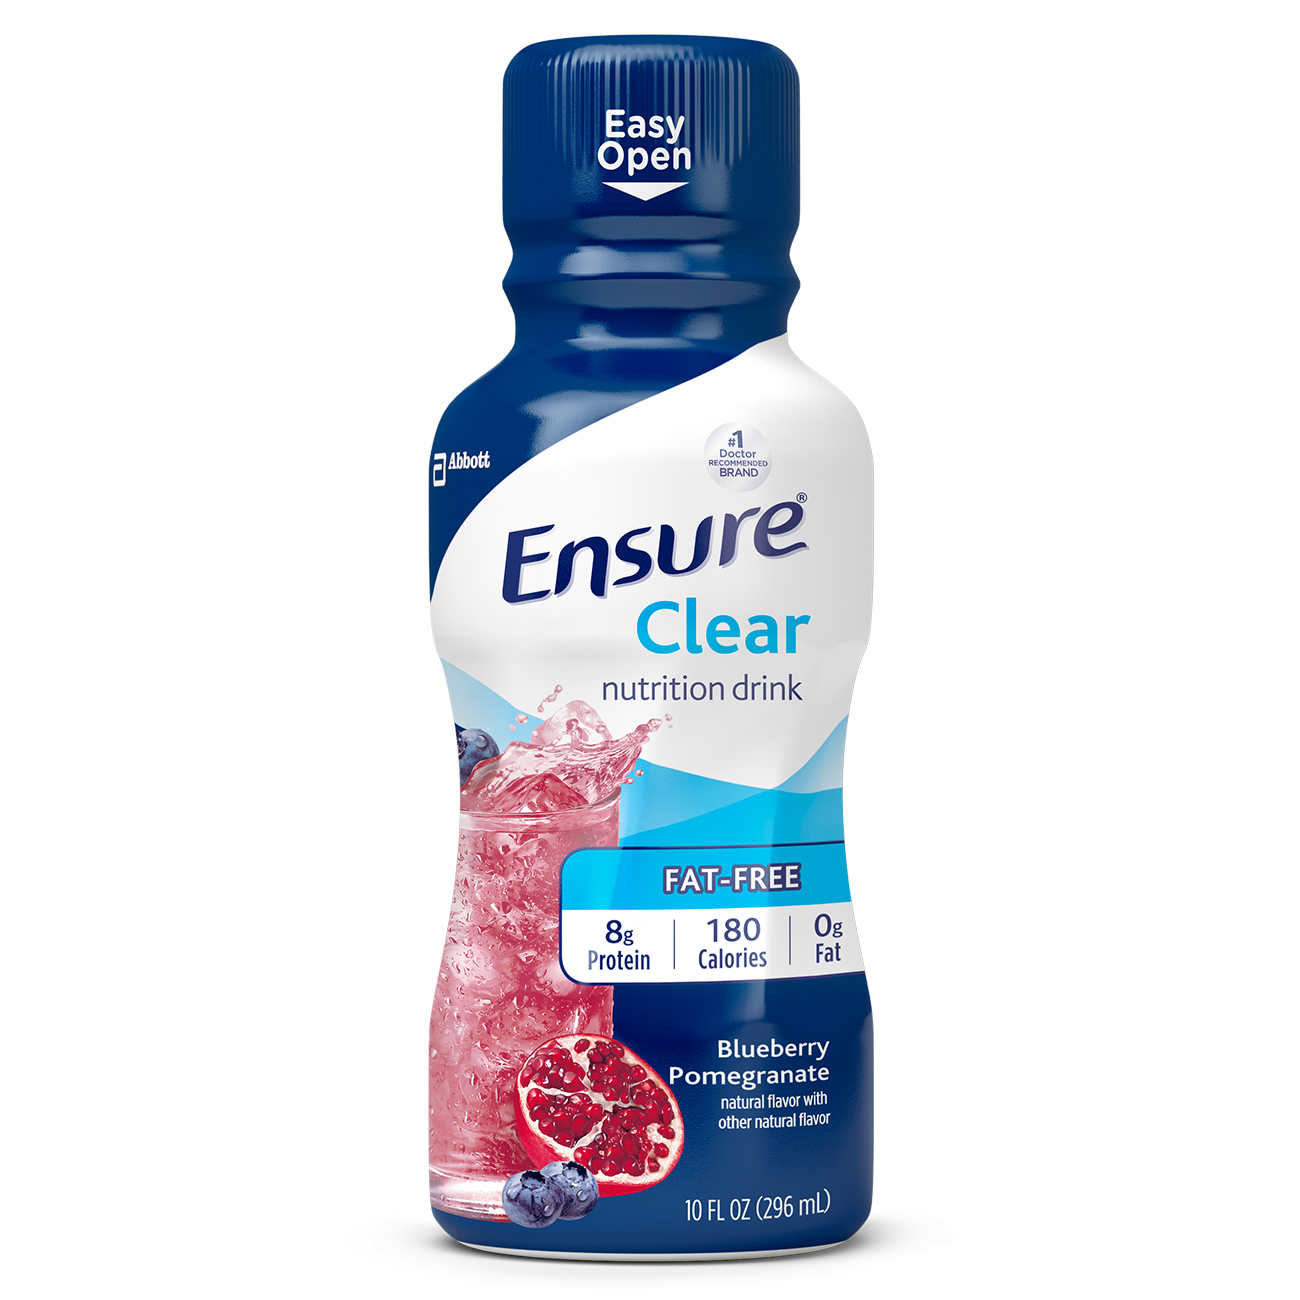 Ensure Clear Nutrition Drink, 0g fat, 8g of high-quality protein, Blueberry Pomegranate, 10 Fl oz, 4 Ct